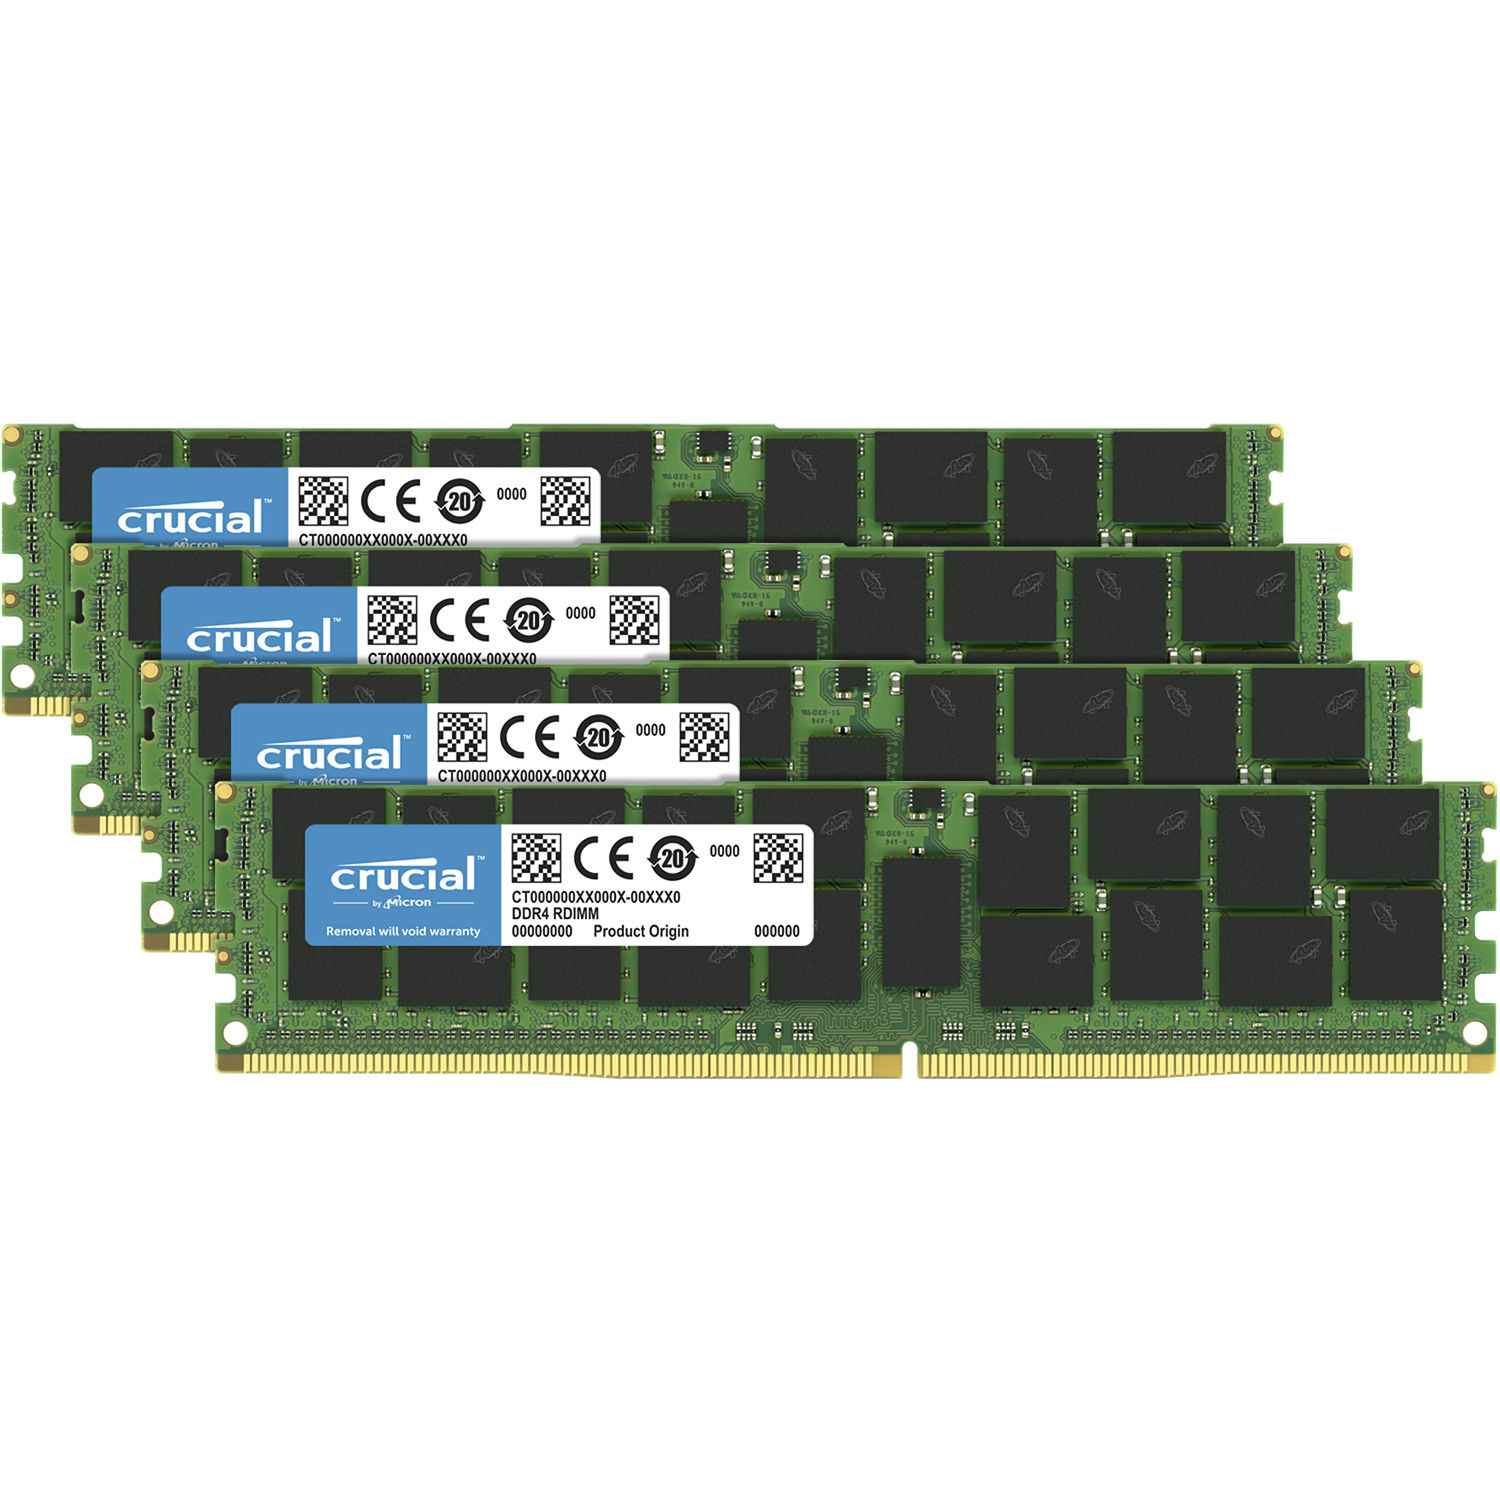 Crucial 64GB Kit (4 X 16GB) DDR4-2933 RDIMM